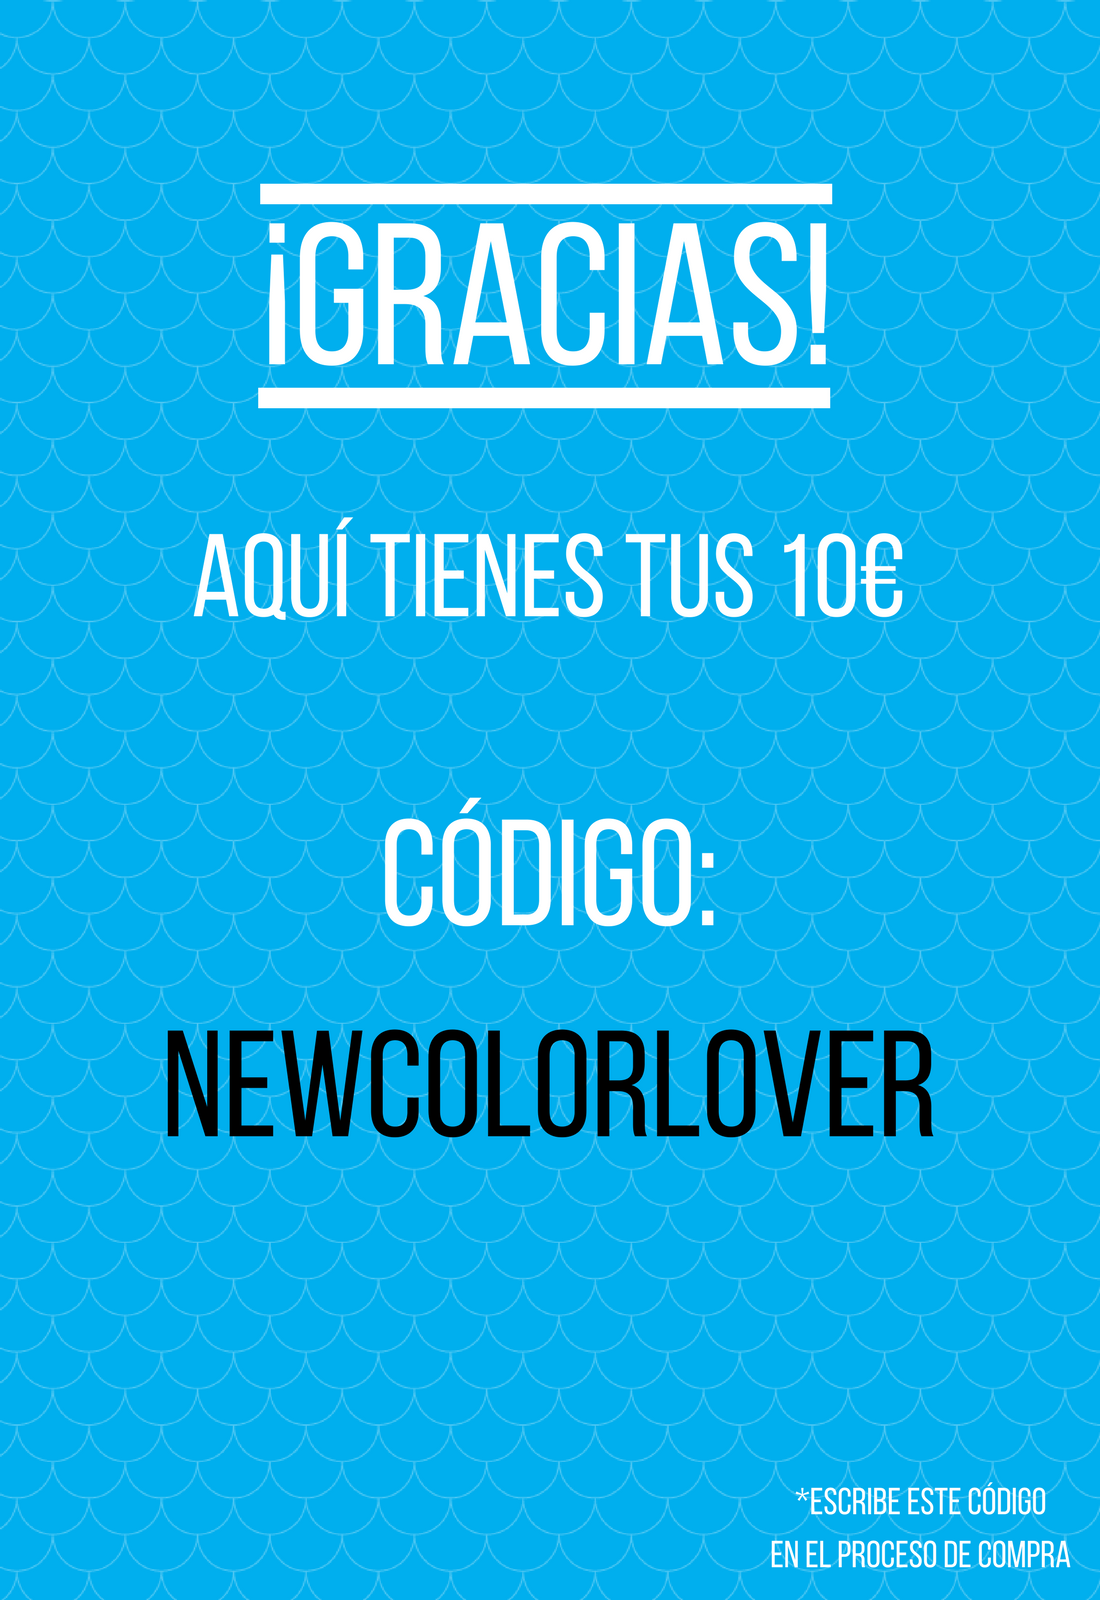 NEWCOLORLOVER